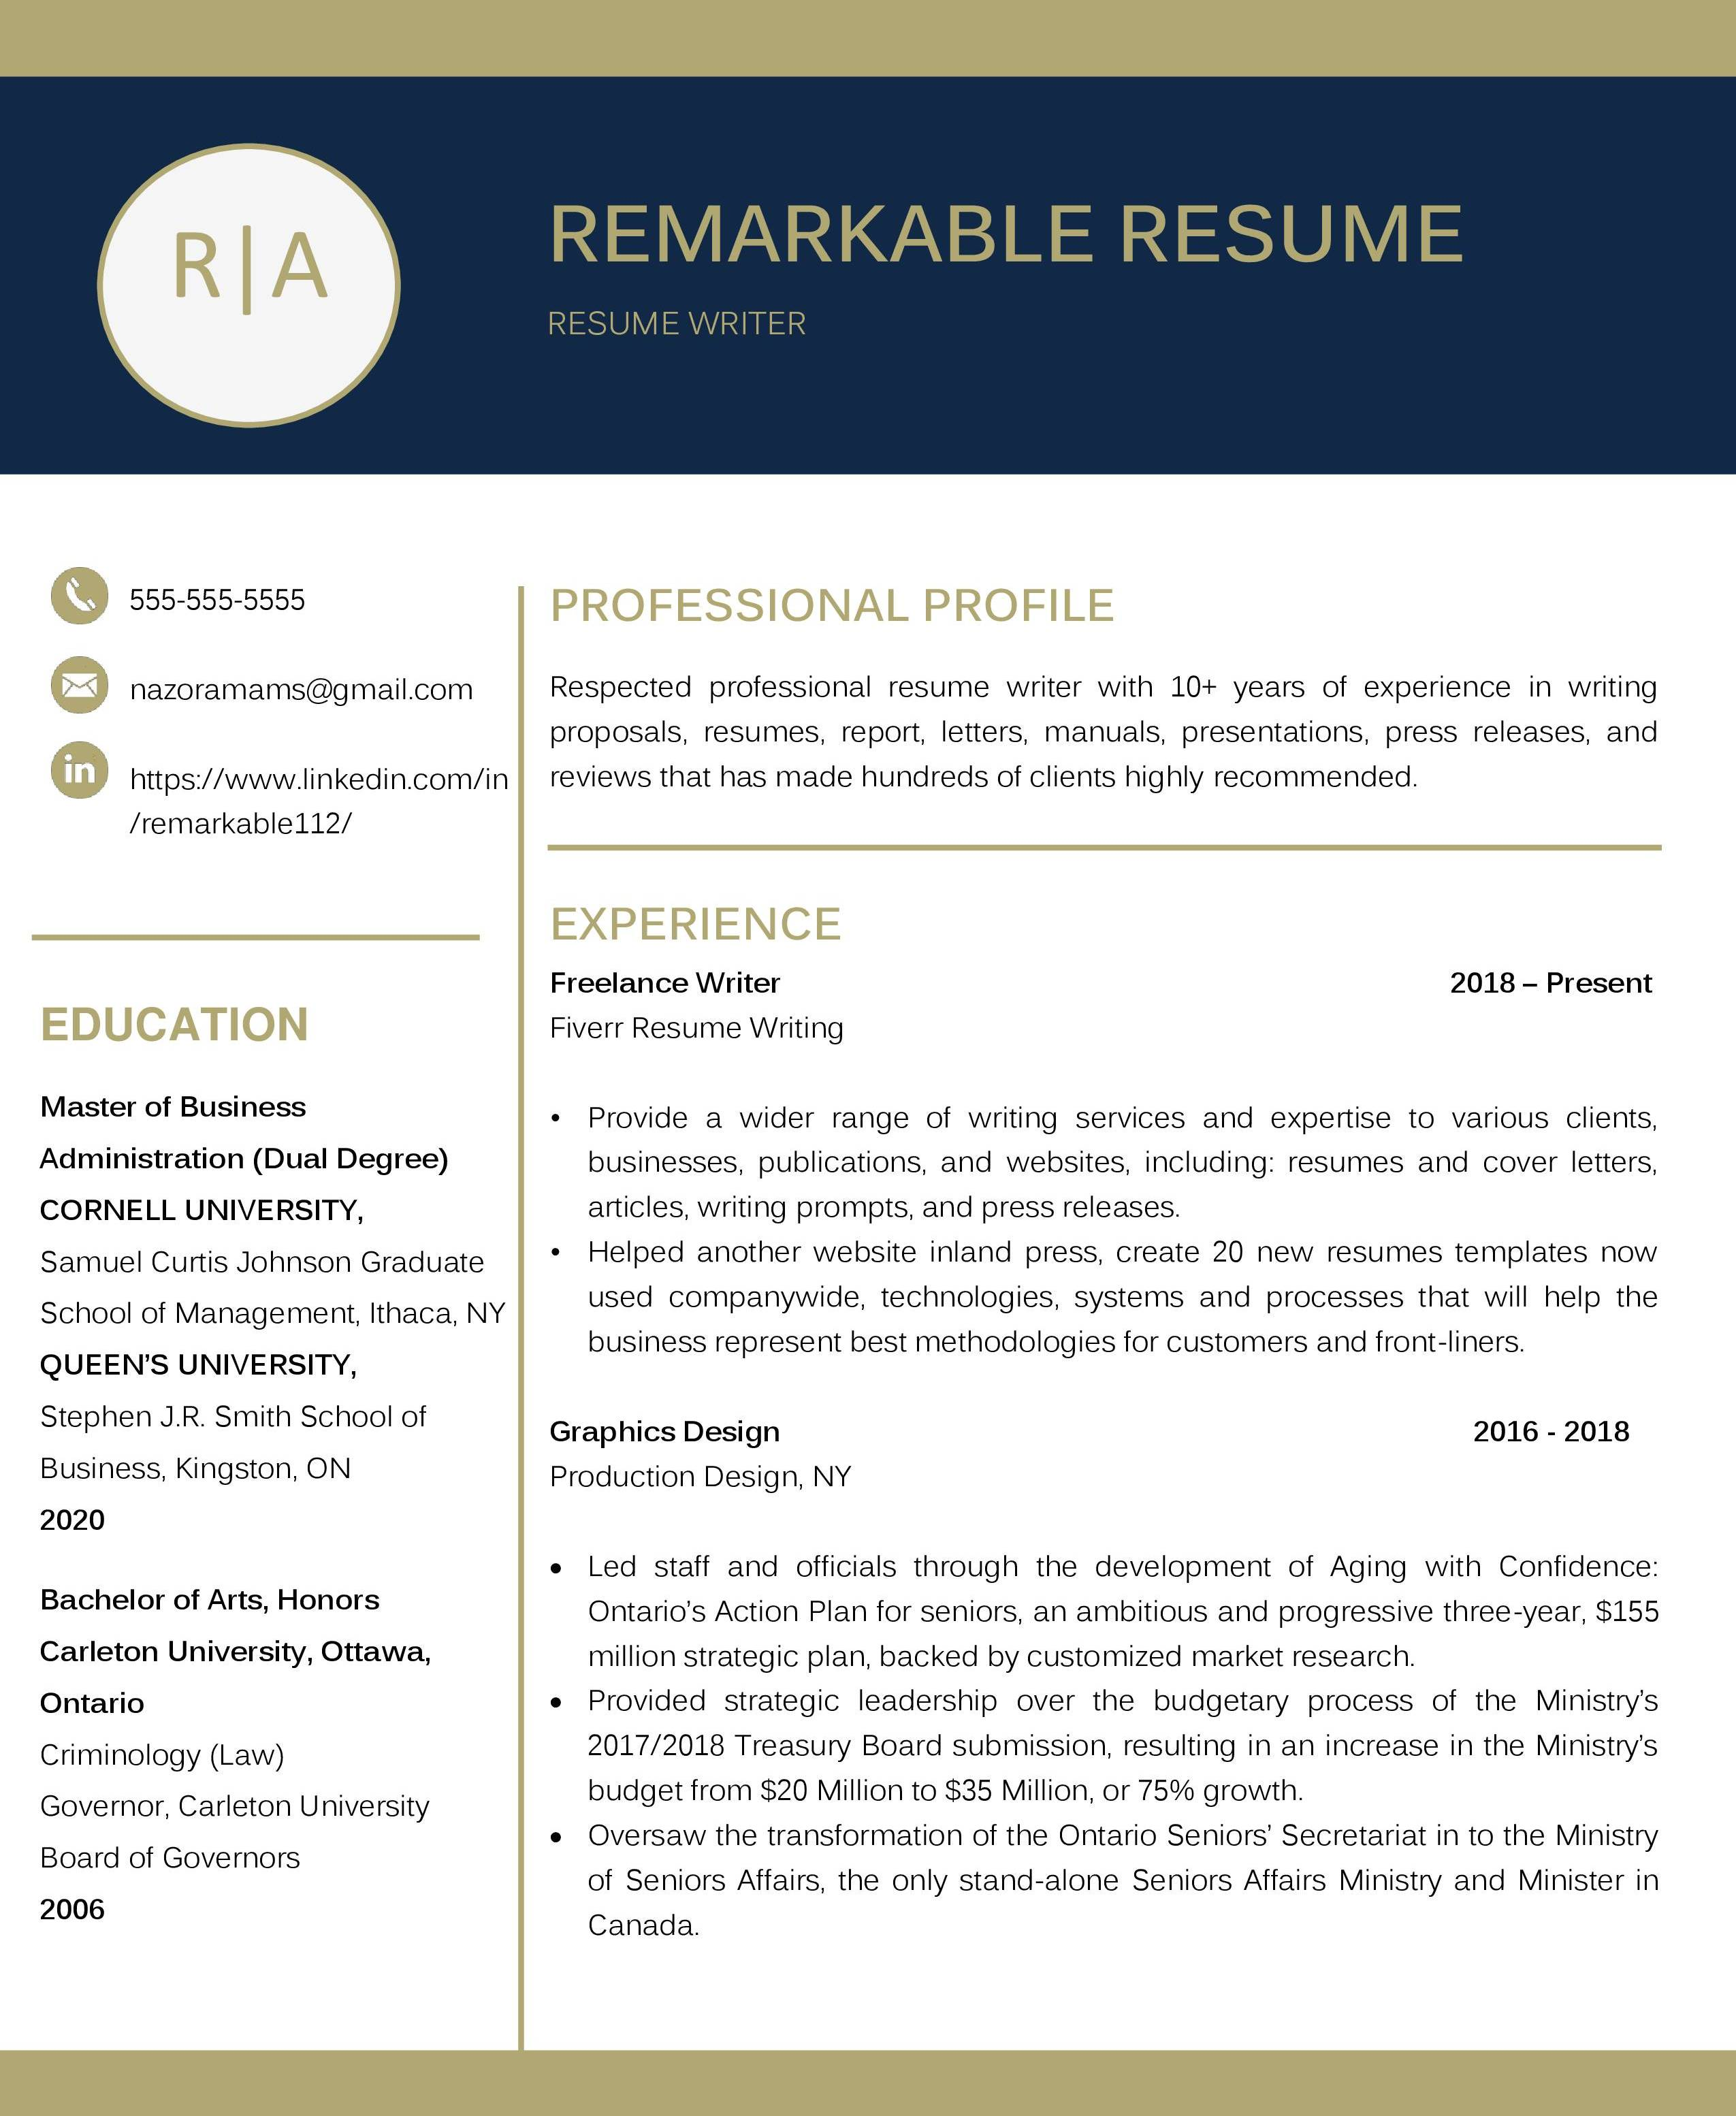 write your resume, linkedin profile, cover letter